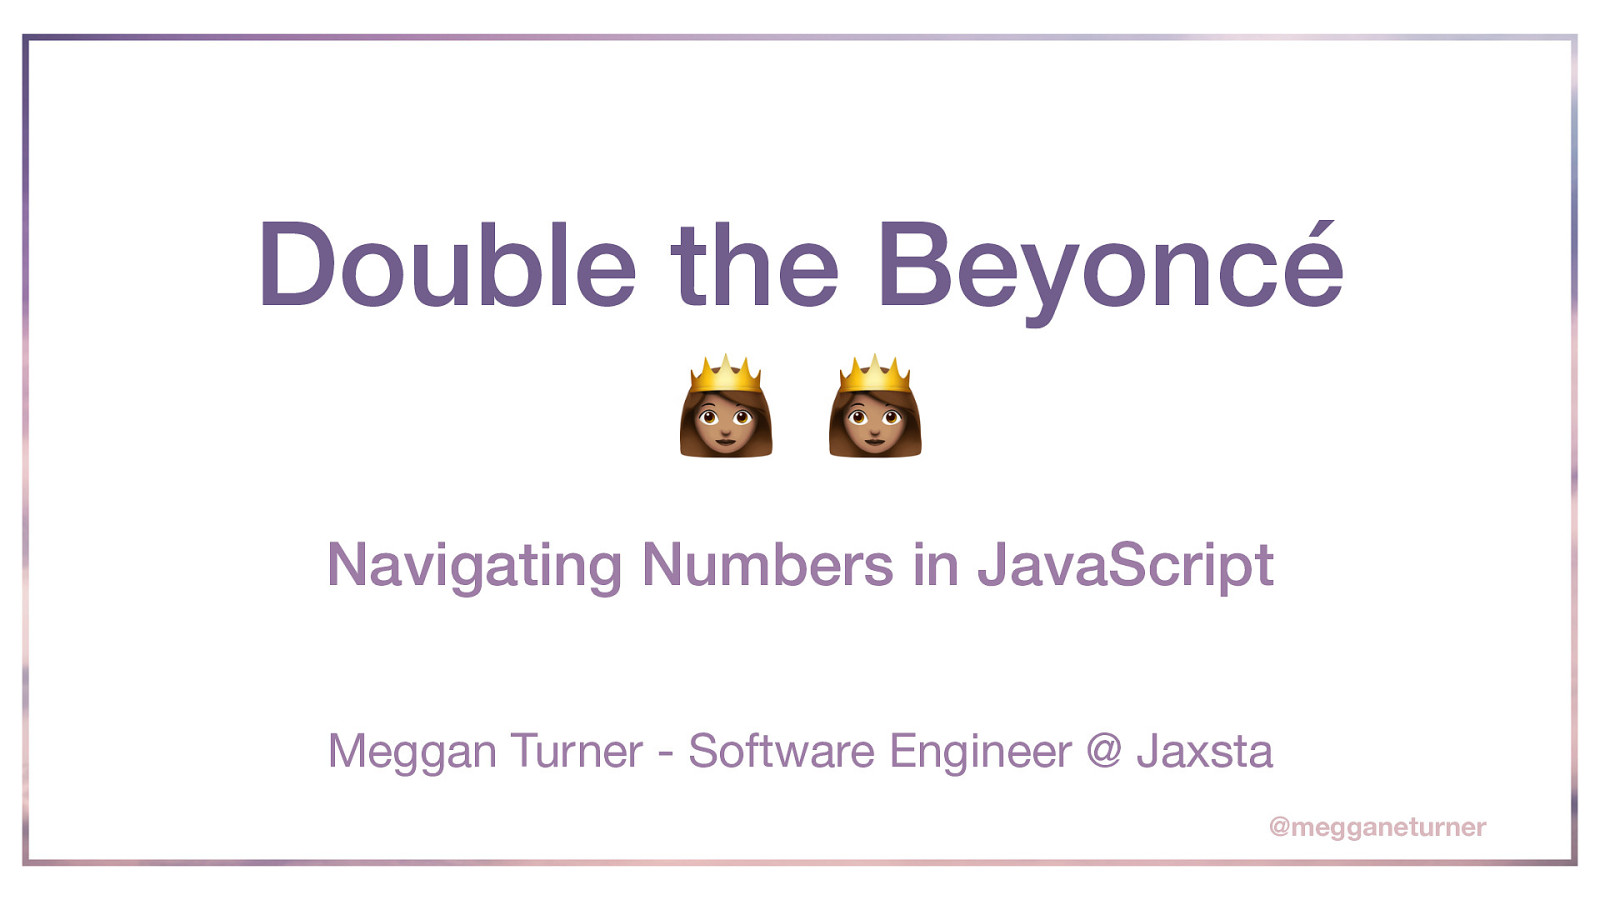 Double the Beyoncé: Navigating Numbers in JavaScript by Meggan Turner